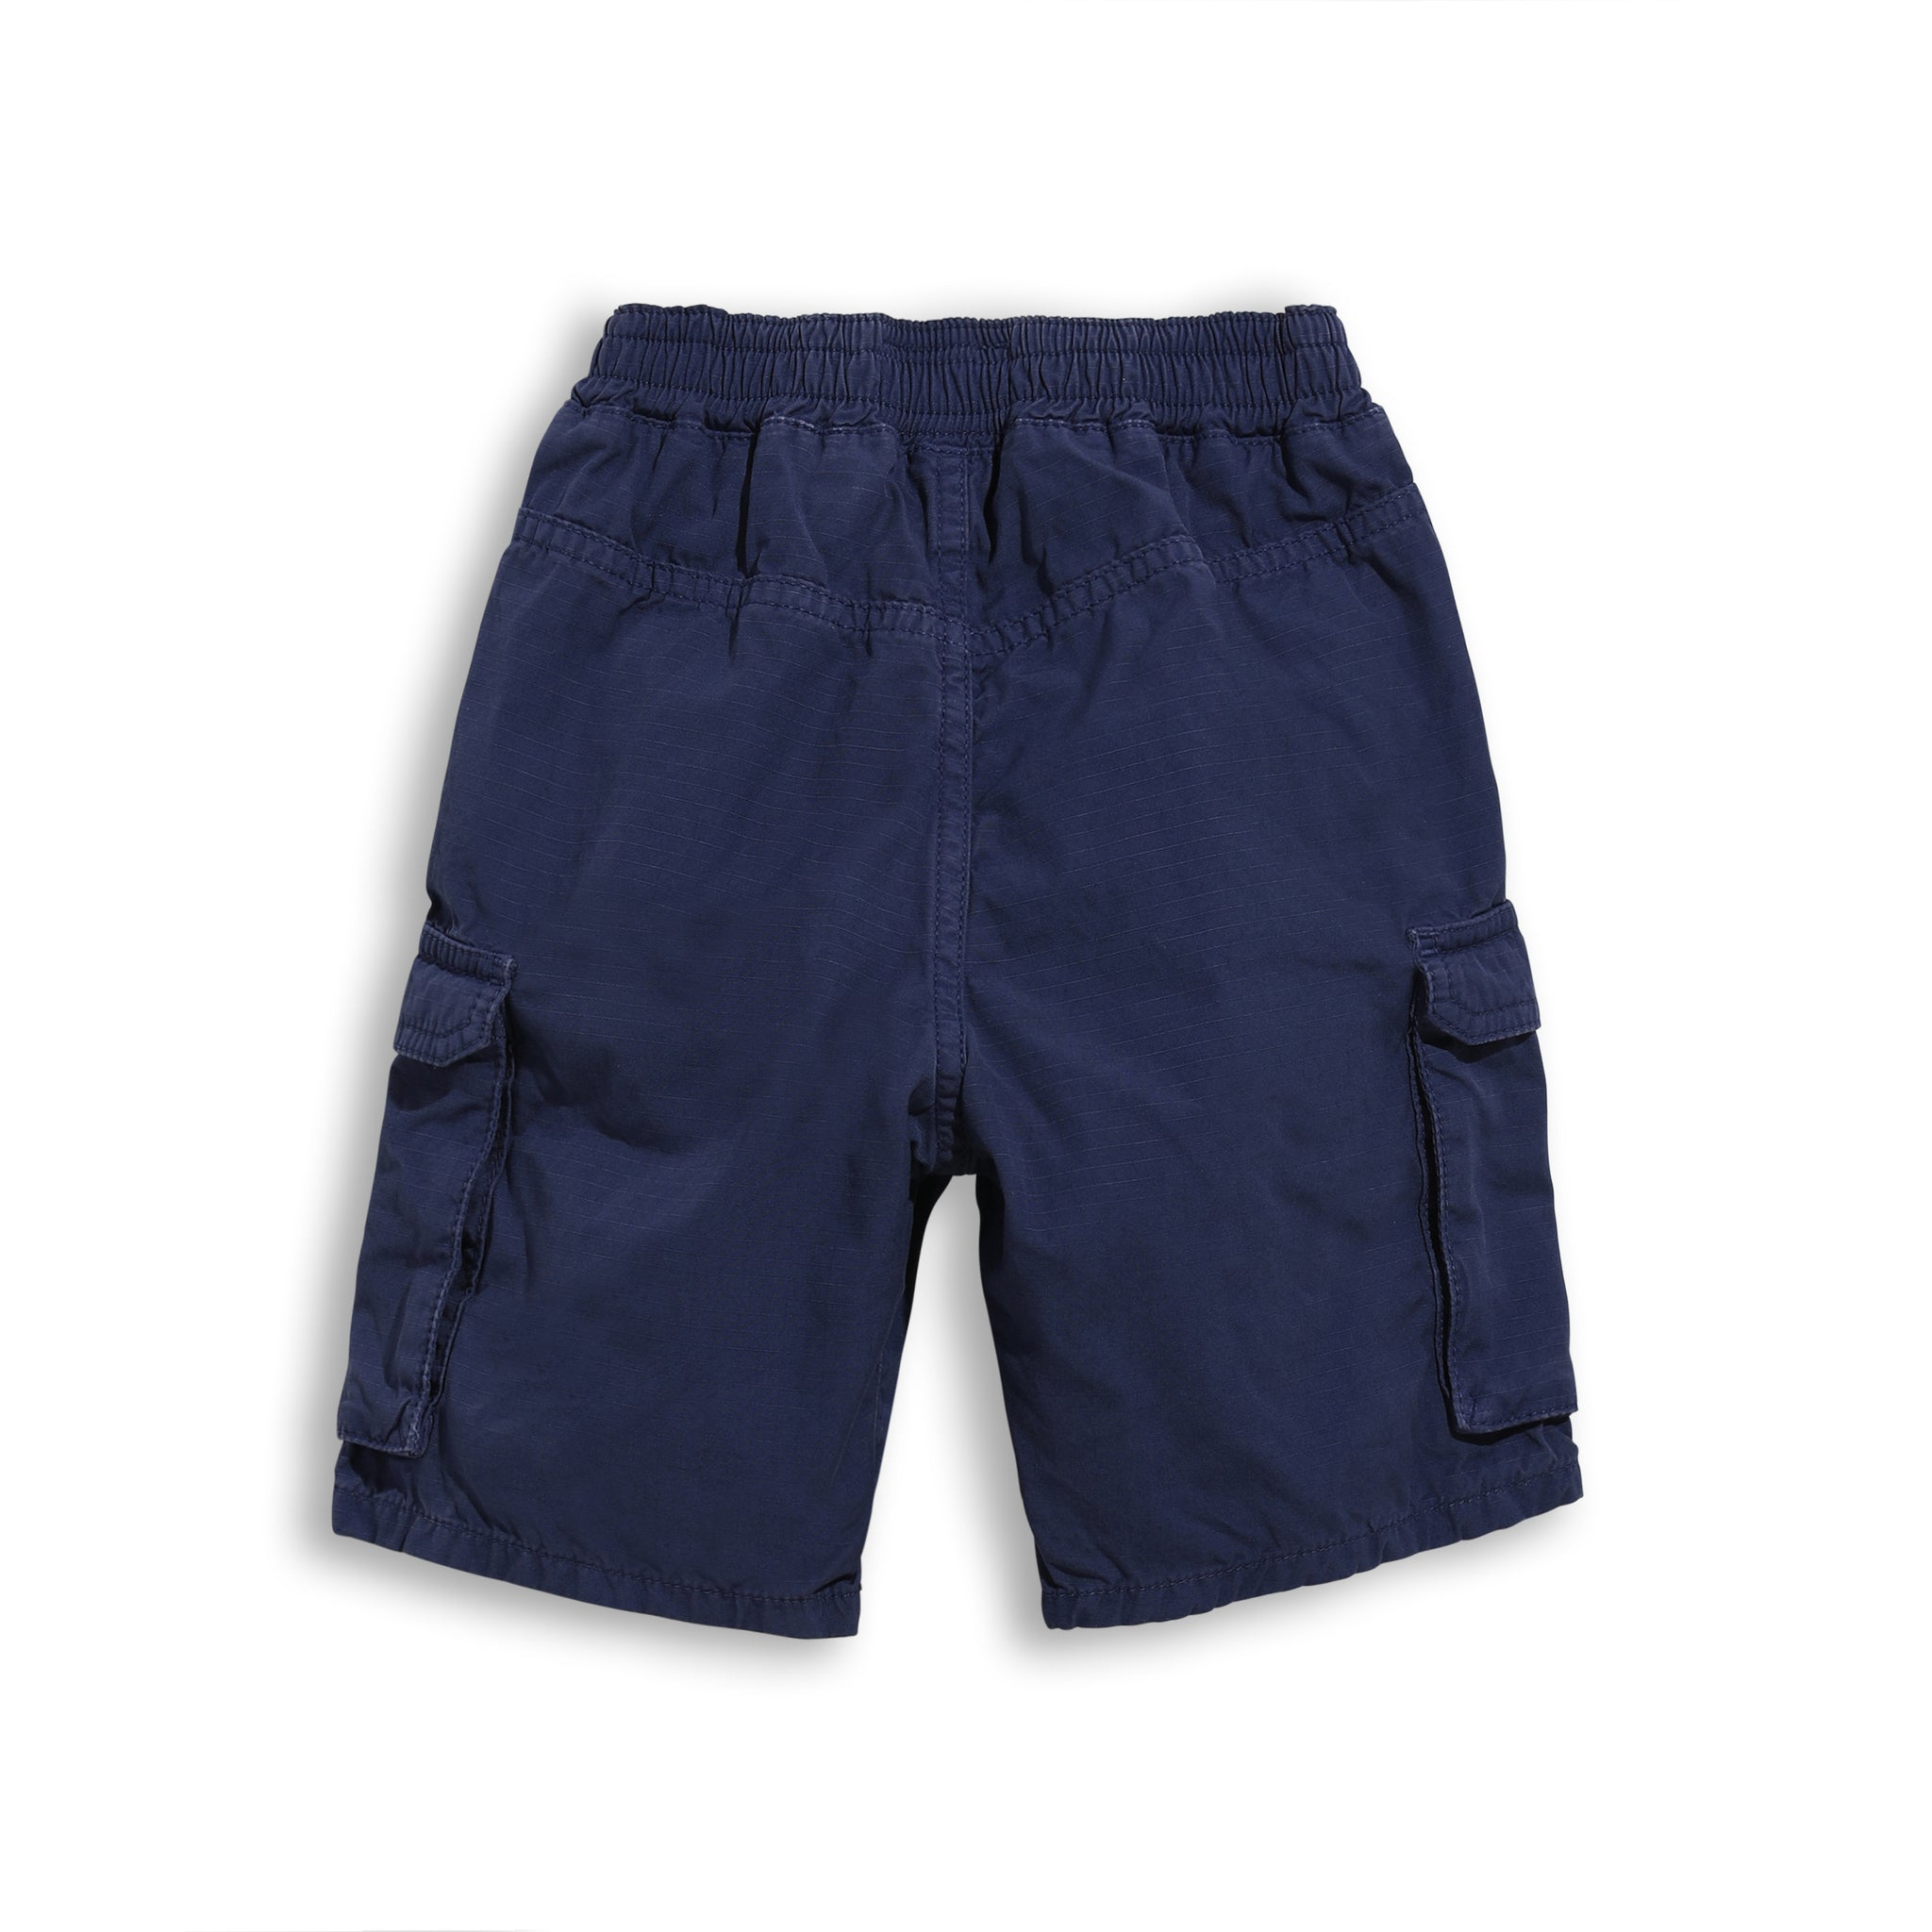 SHORTBEACH Kraft Blue - Cargo Shorts 2